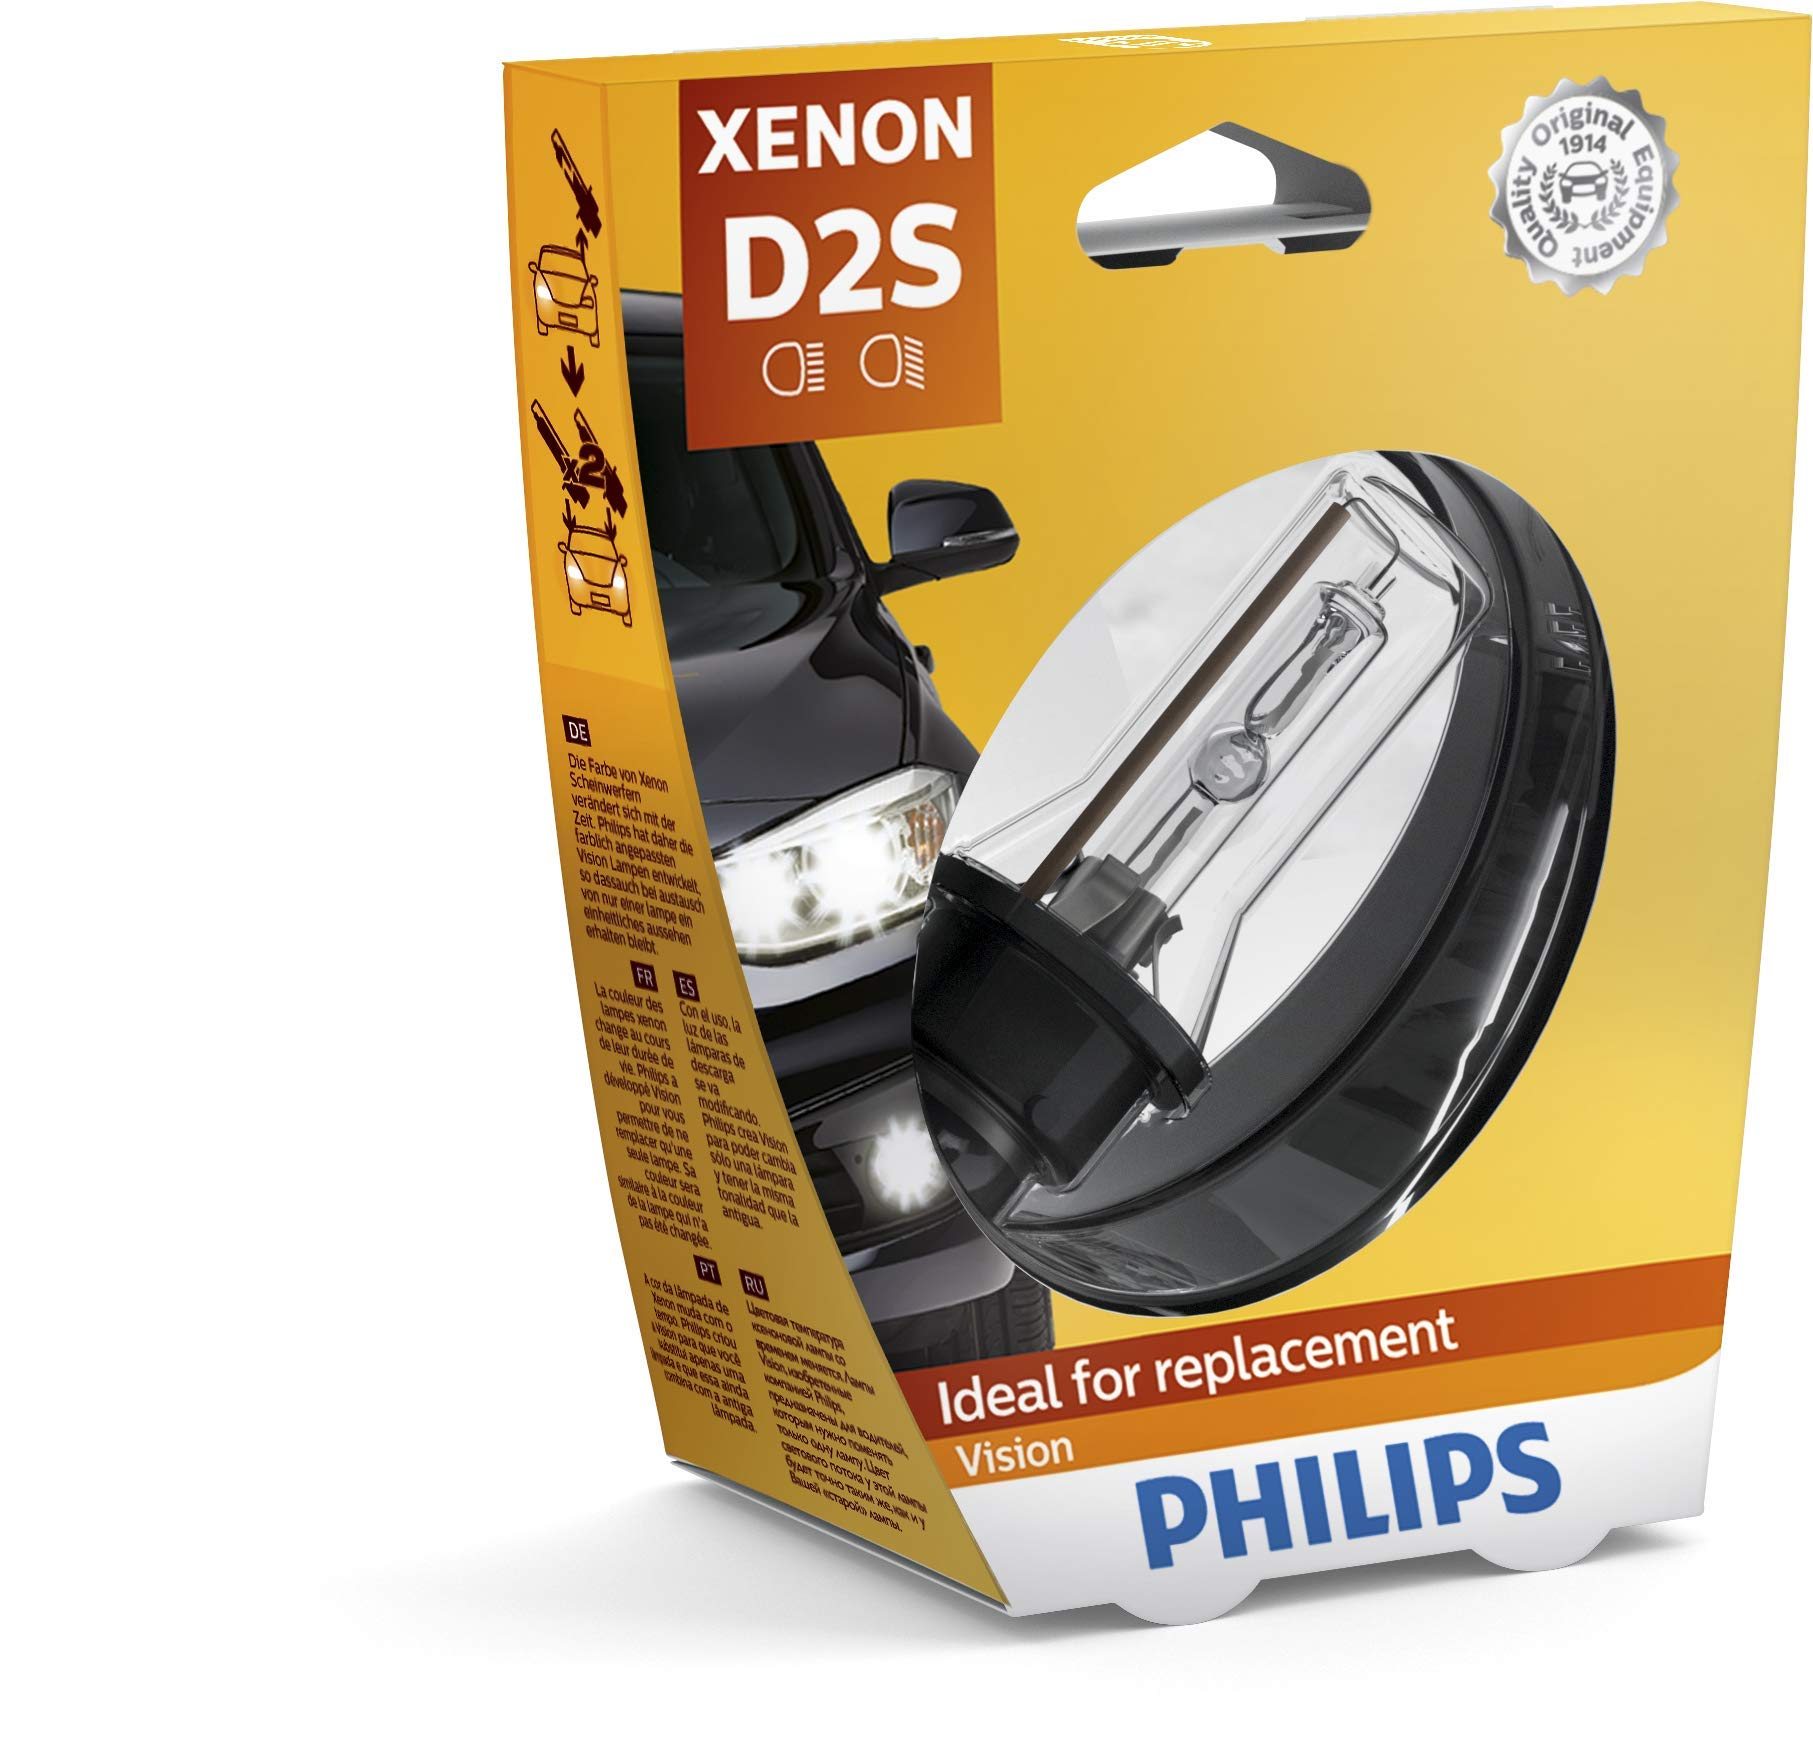 Philips 85122VIS1 Xenon Vision D2S, 1-er Blister von Philips automotive lighting